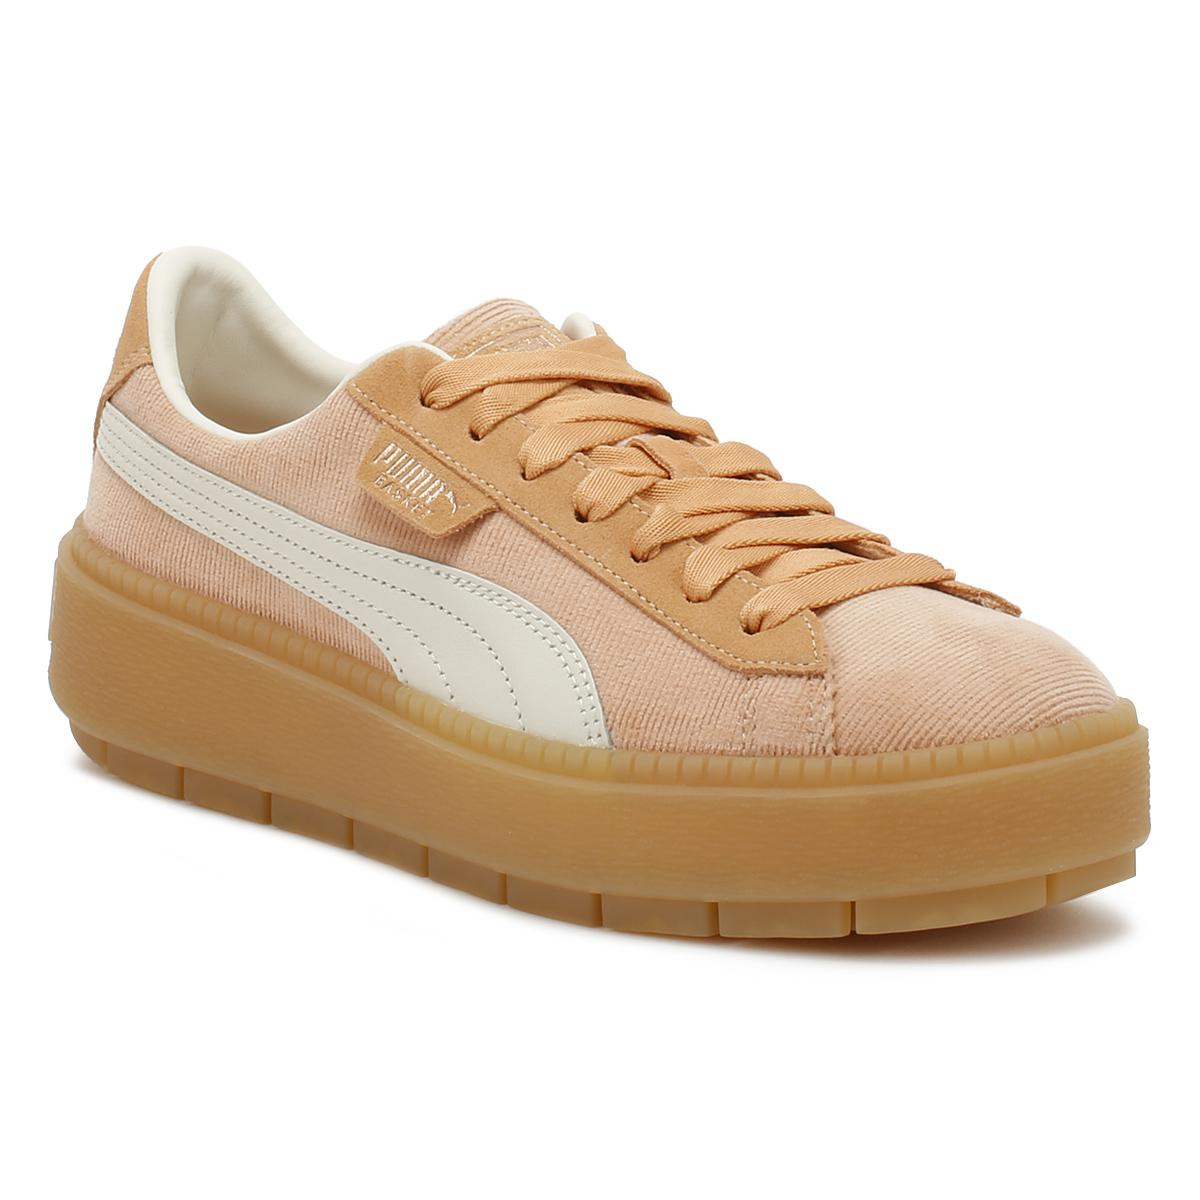 3efe1a6f26d8 Lyst - PUMA Womens Dusty Coral Corduroy Trace Platform Trainers in ...